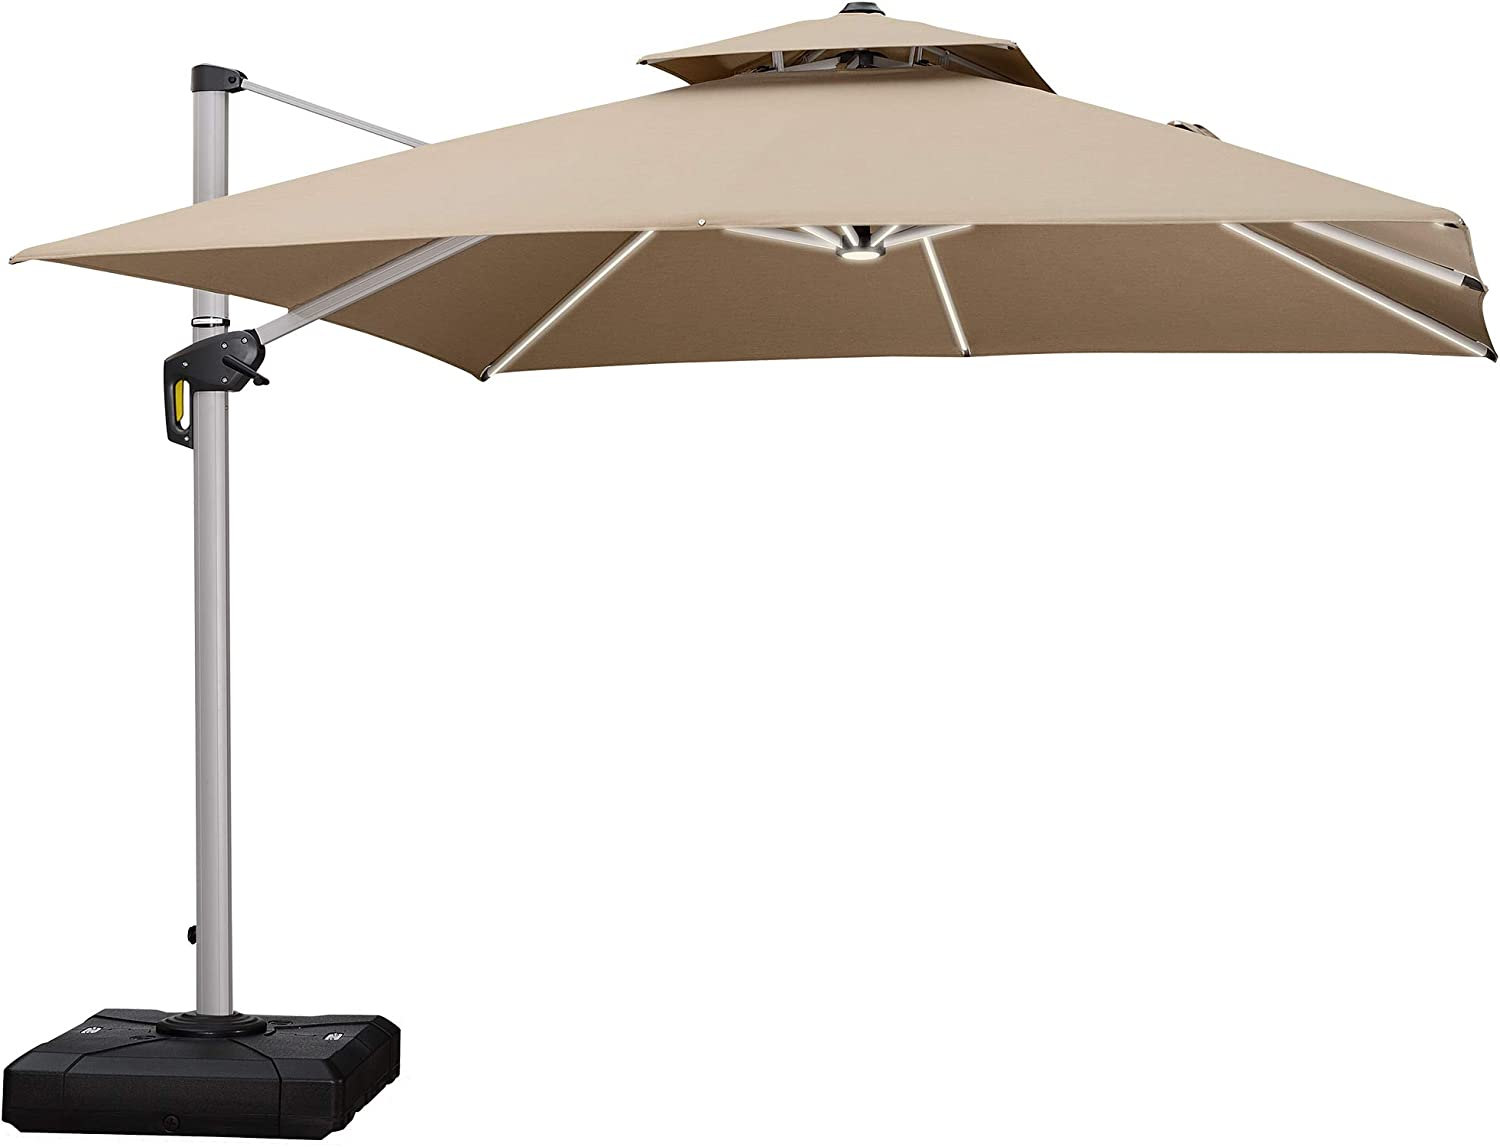 PURPLE LEAF 9 Feet Double Top Deluxe Solar Powered LED Square Patio Umbrella Offset Hanging Umbrella Outdoor Market Umbrella Garden Umbrella, Beige